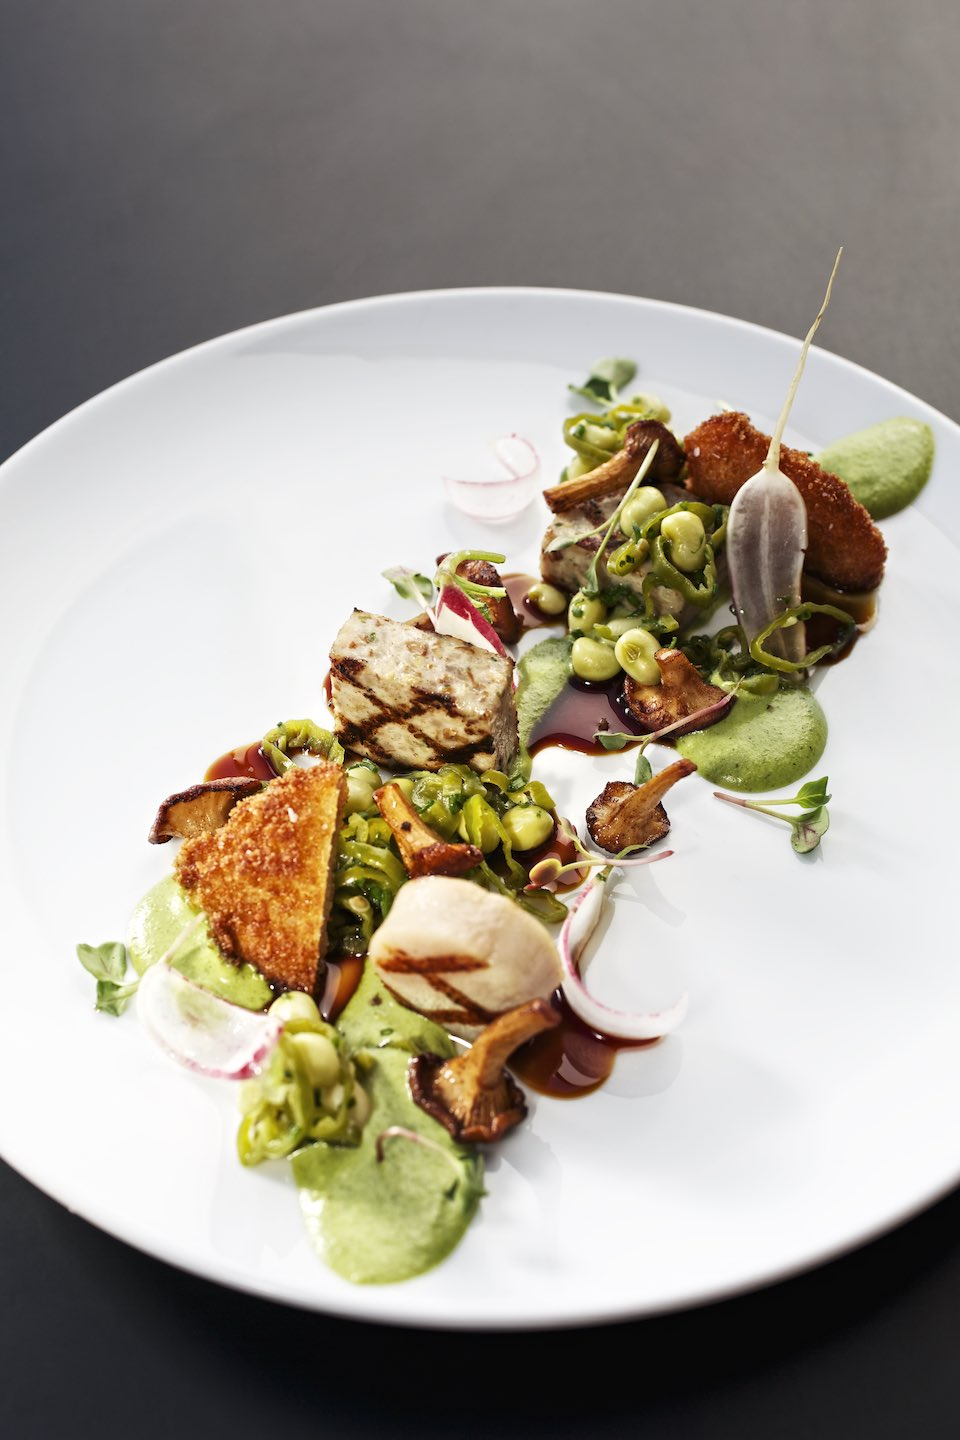 Vibrant vegetable dish presented on a large white plate.